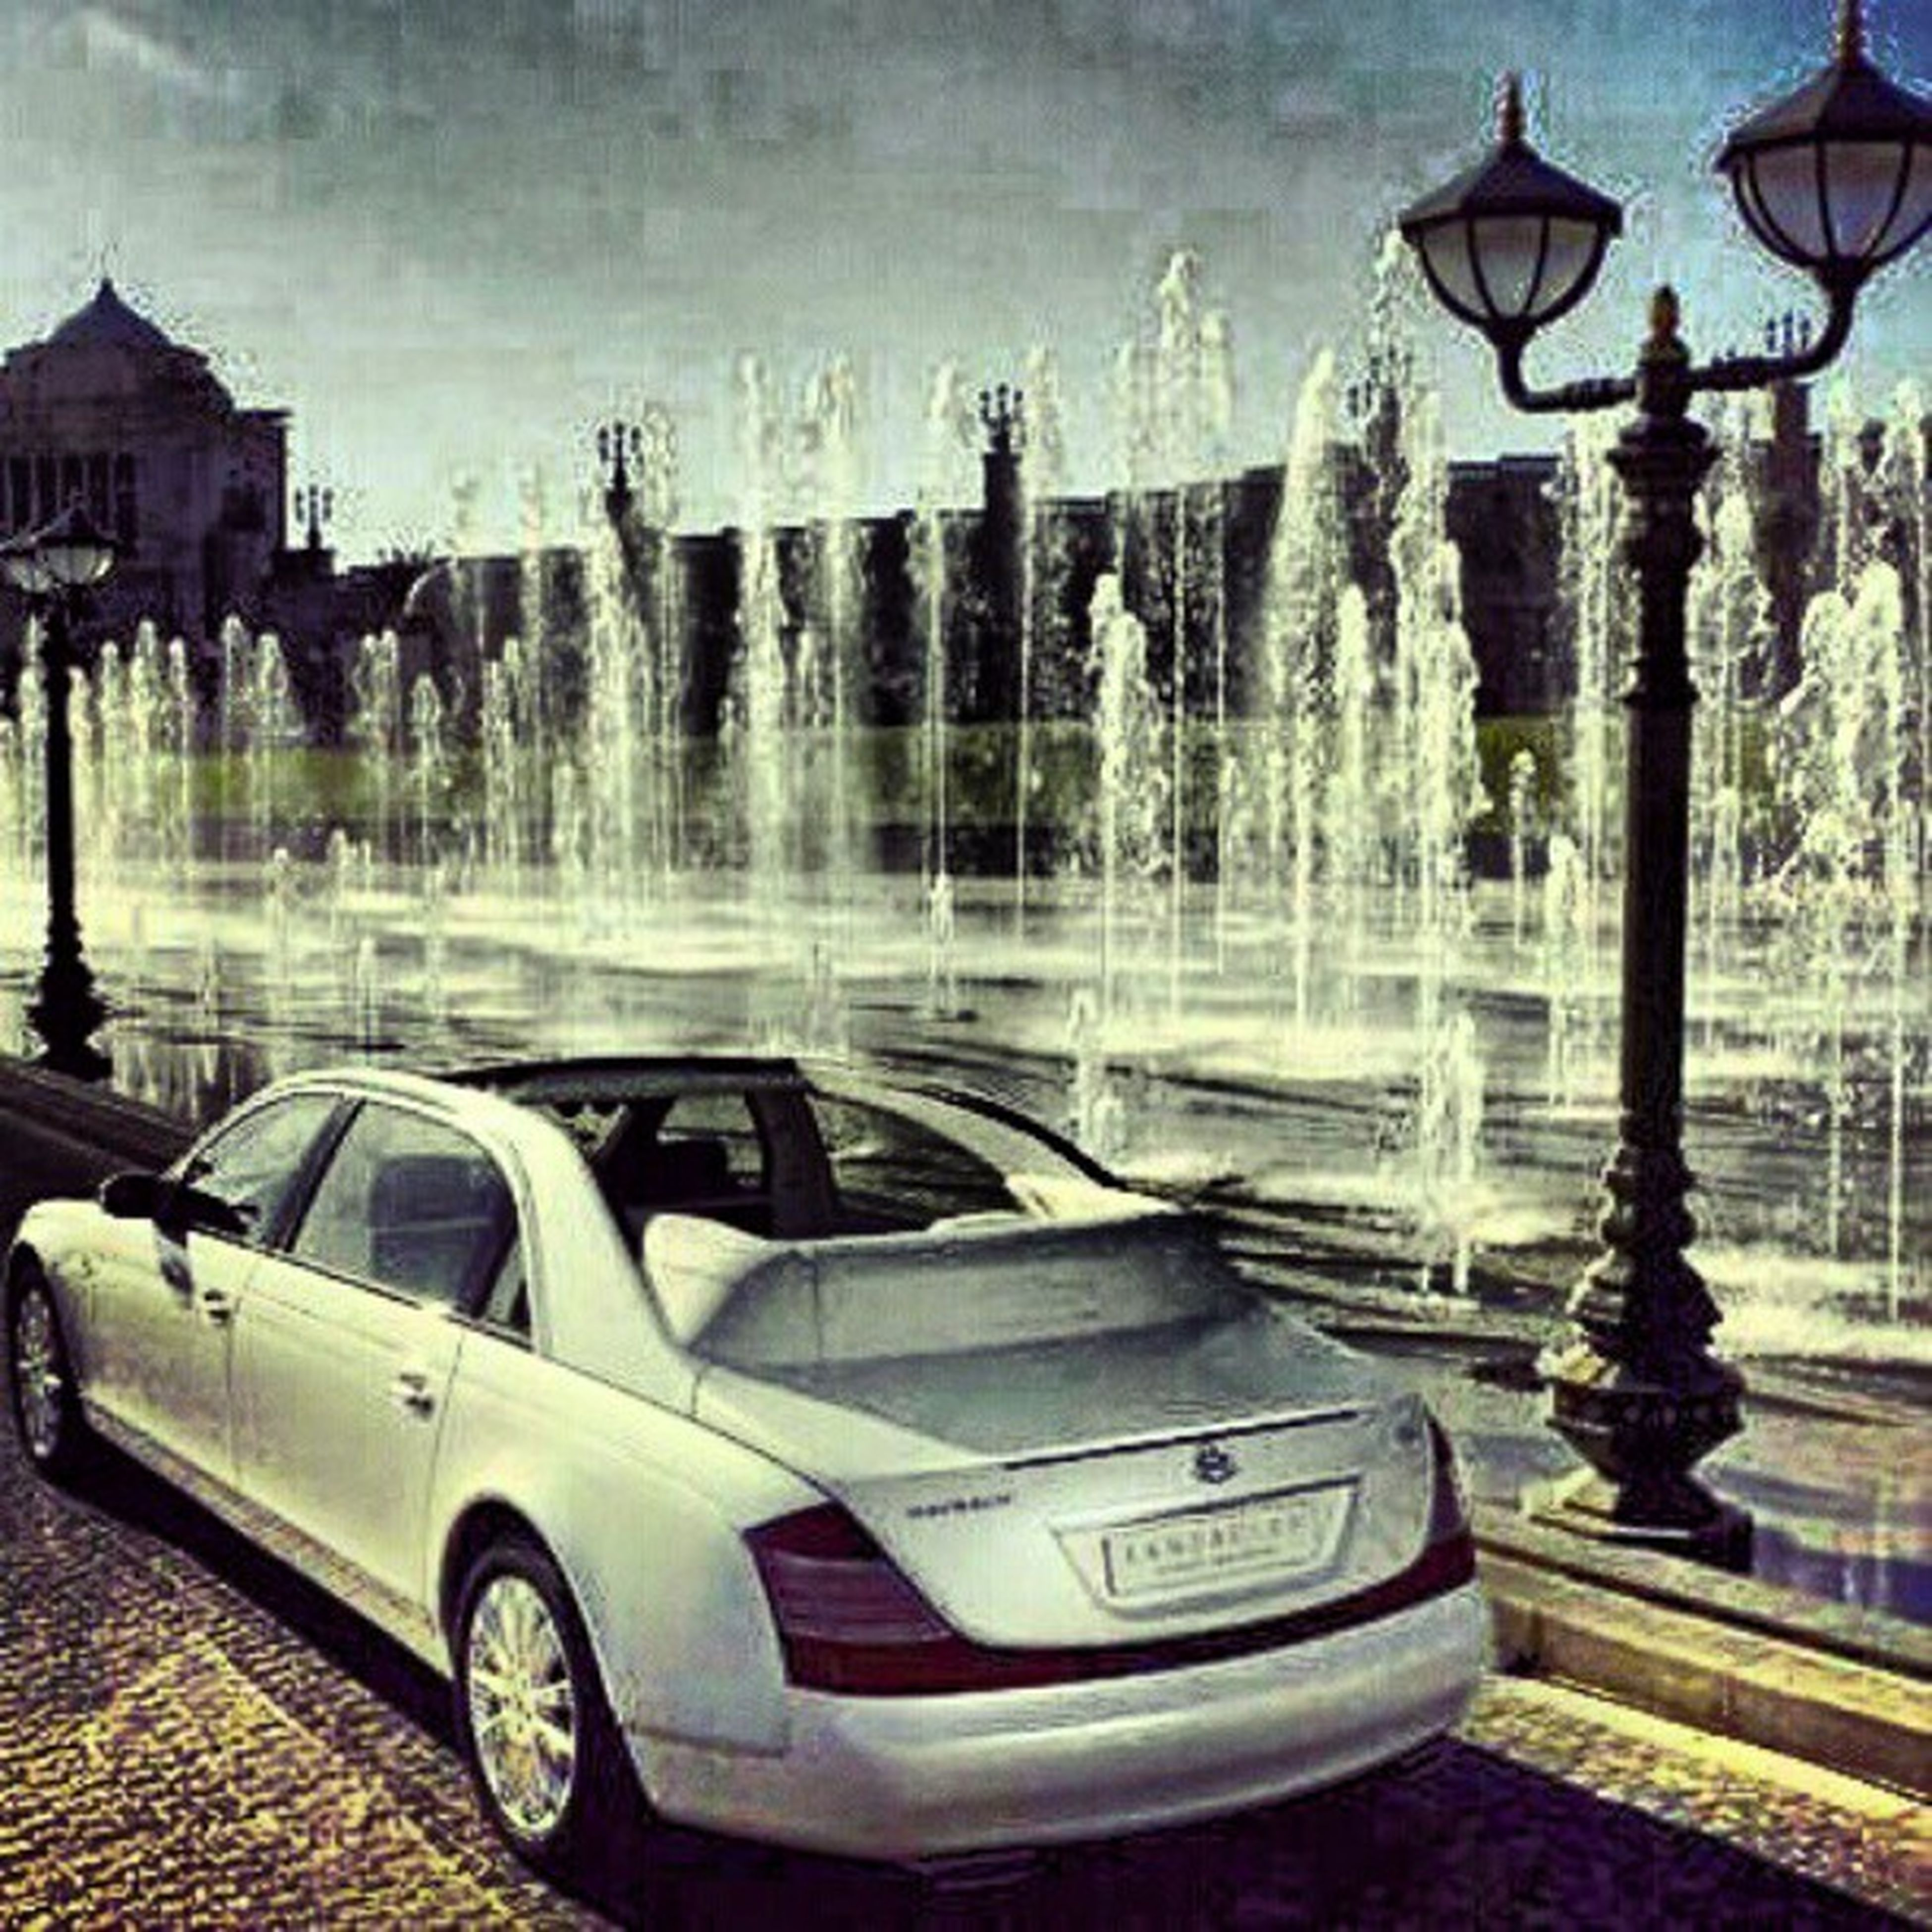 $1.19 million Maybach Landaulet. ForeignLands ForeignWhips Youngrichandflashy